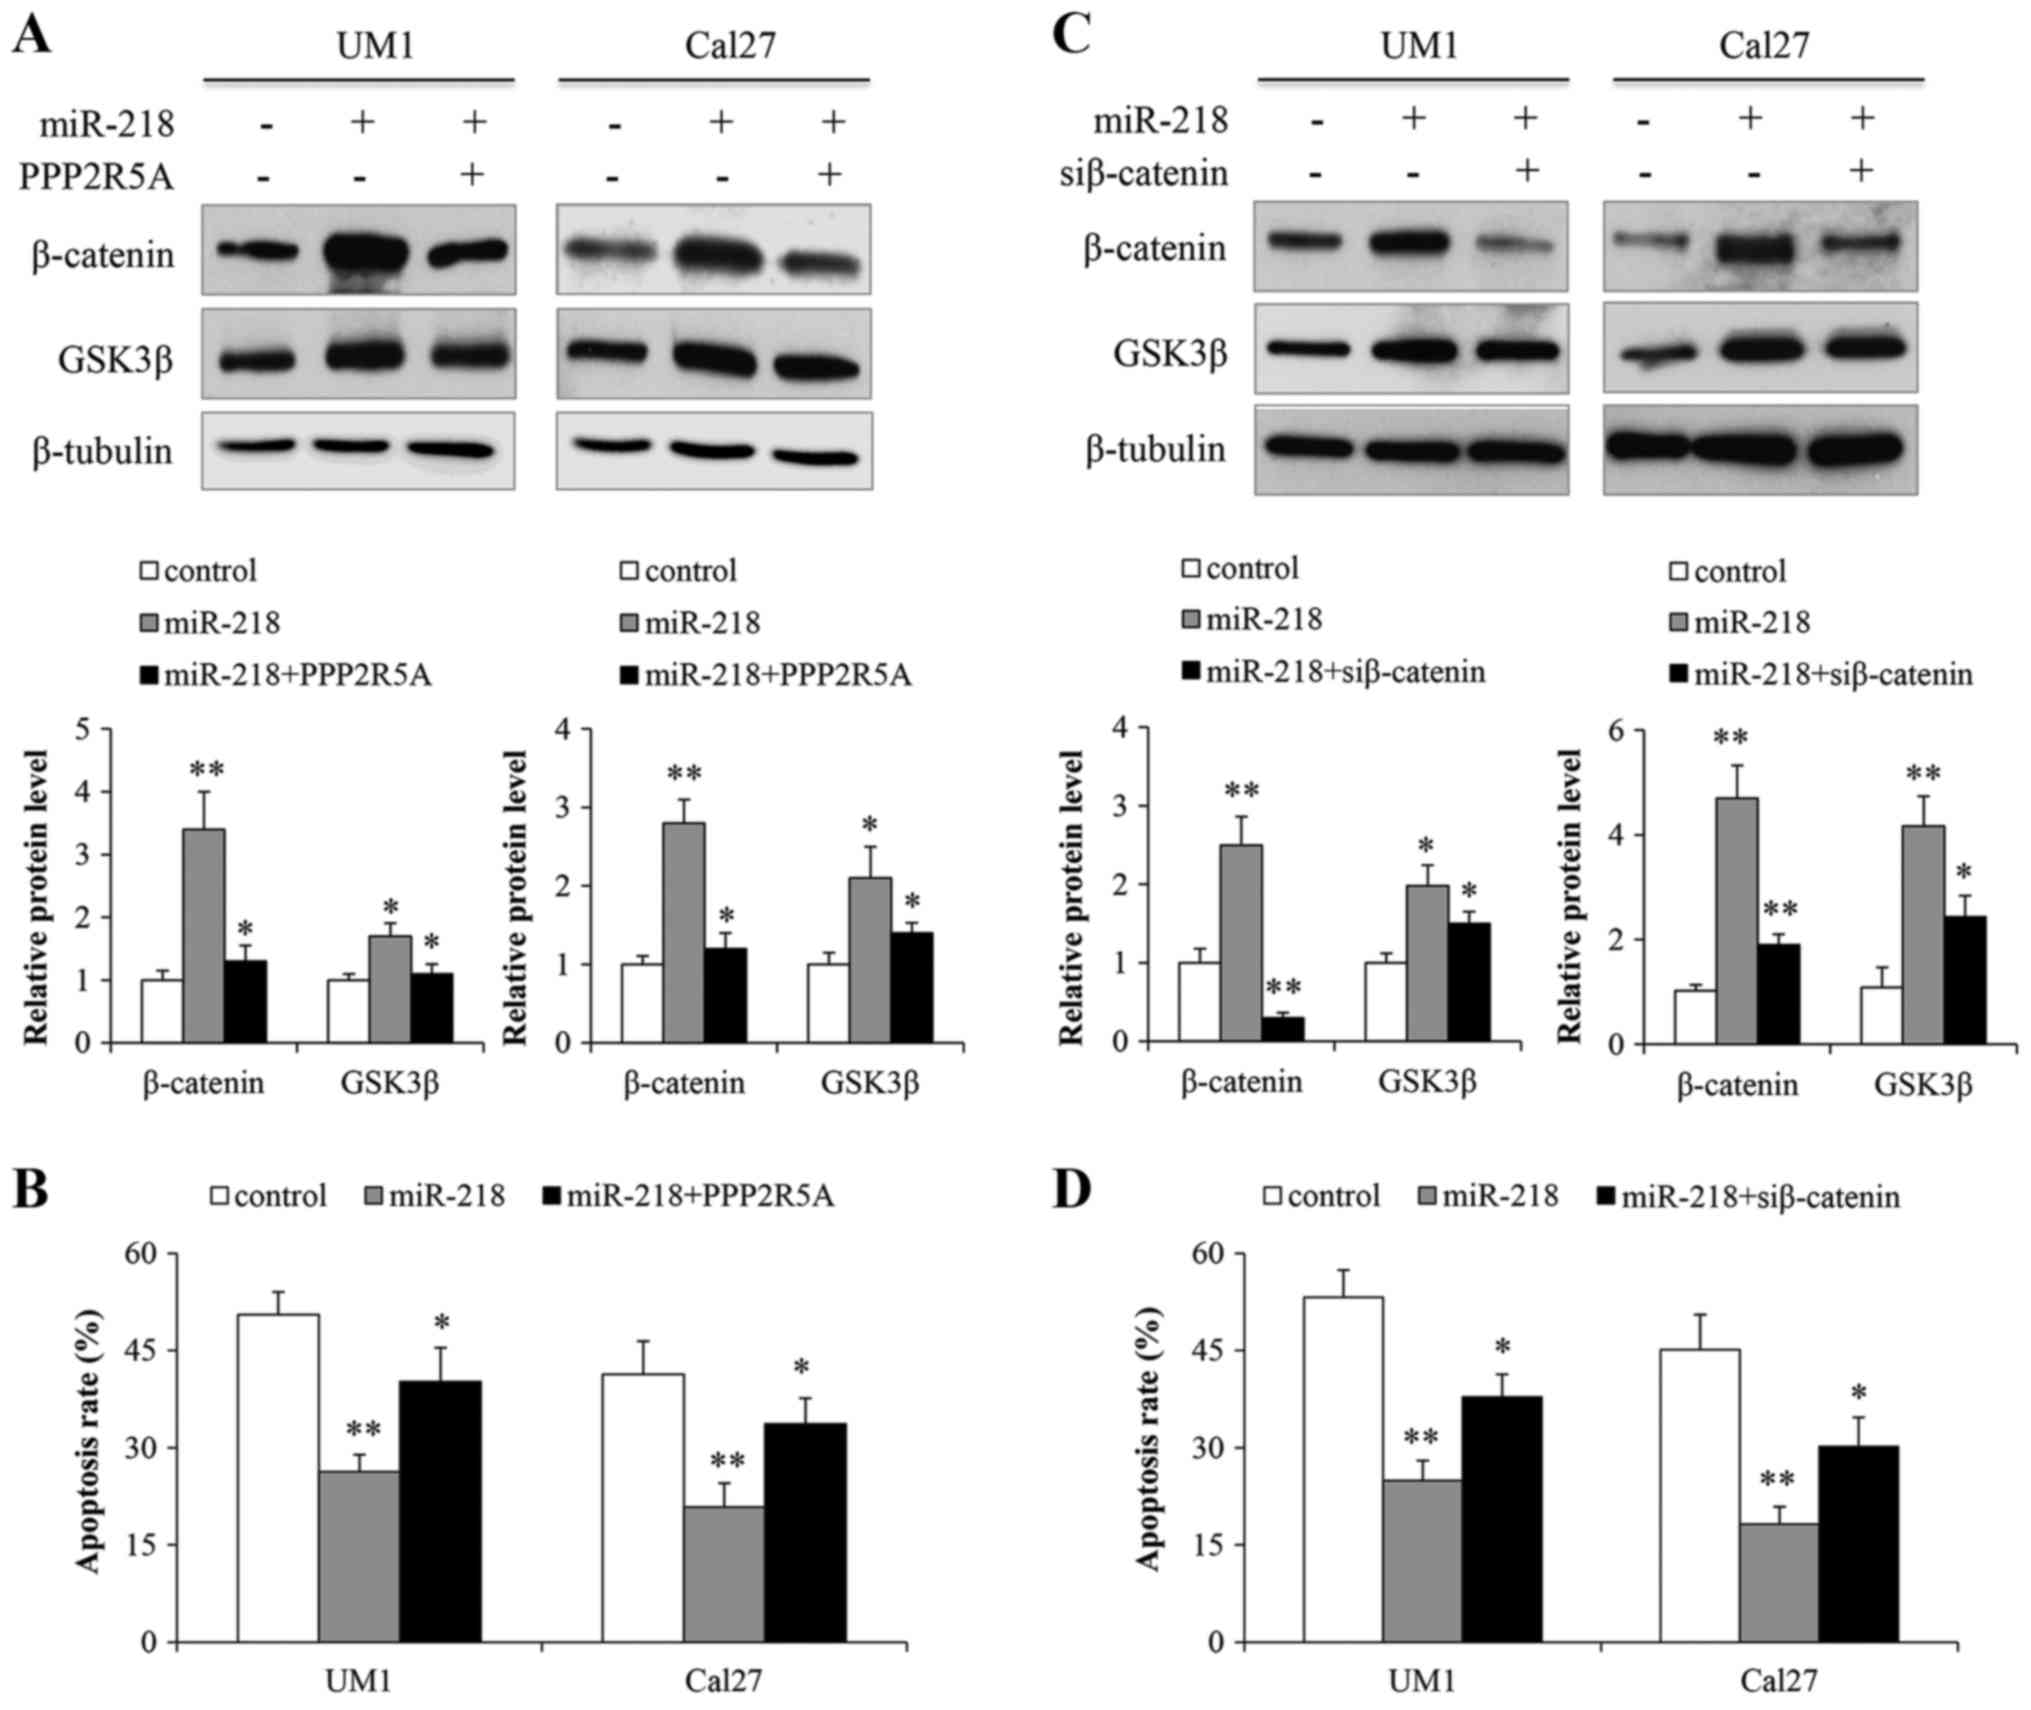 miR-218 activates Wnt signaling in oral cancer cells by inhibiting PPP2R5A.  (A) UM1 and Cal27 cells were transfected with miR-218 along with PPP2R5A or  its ...